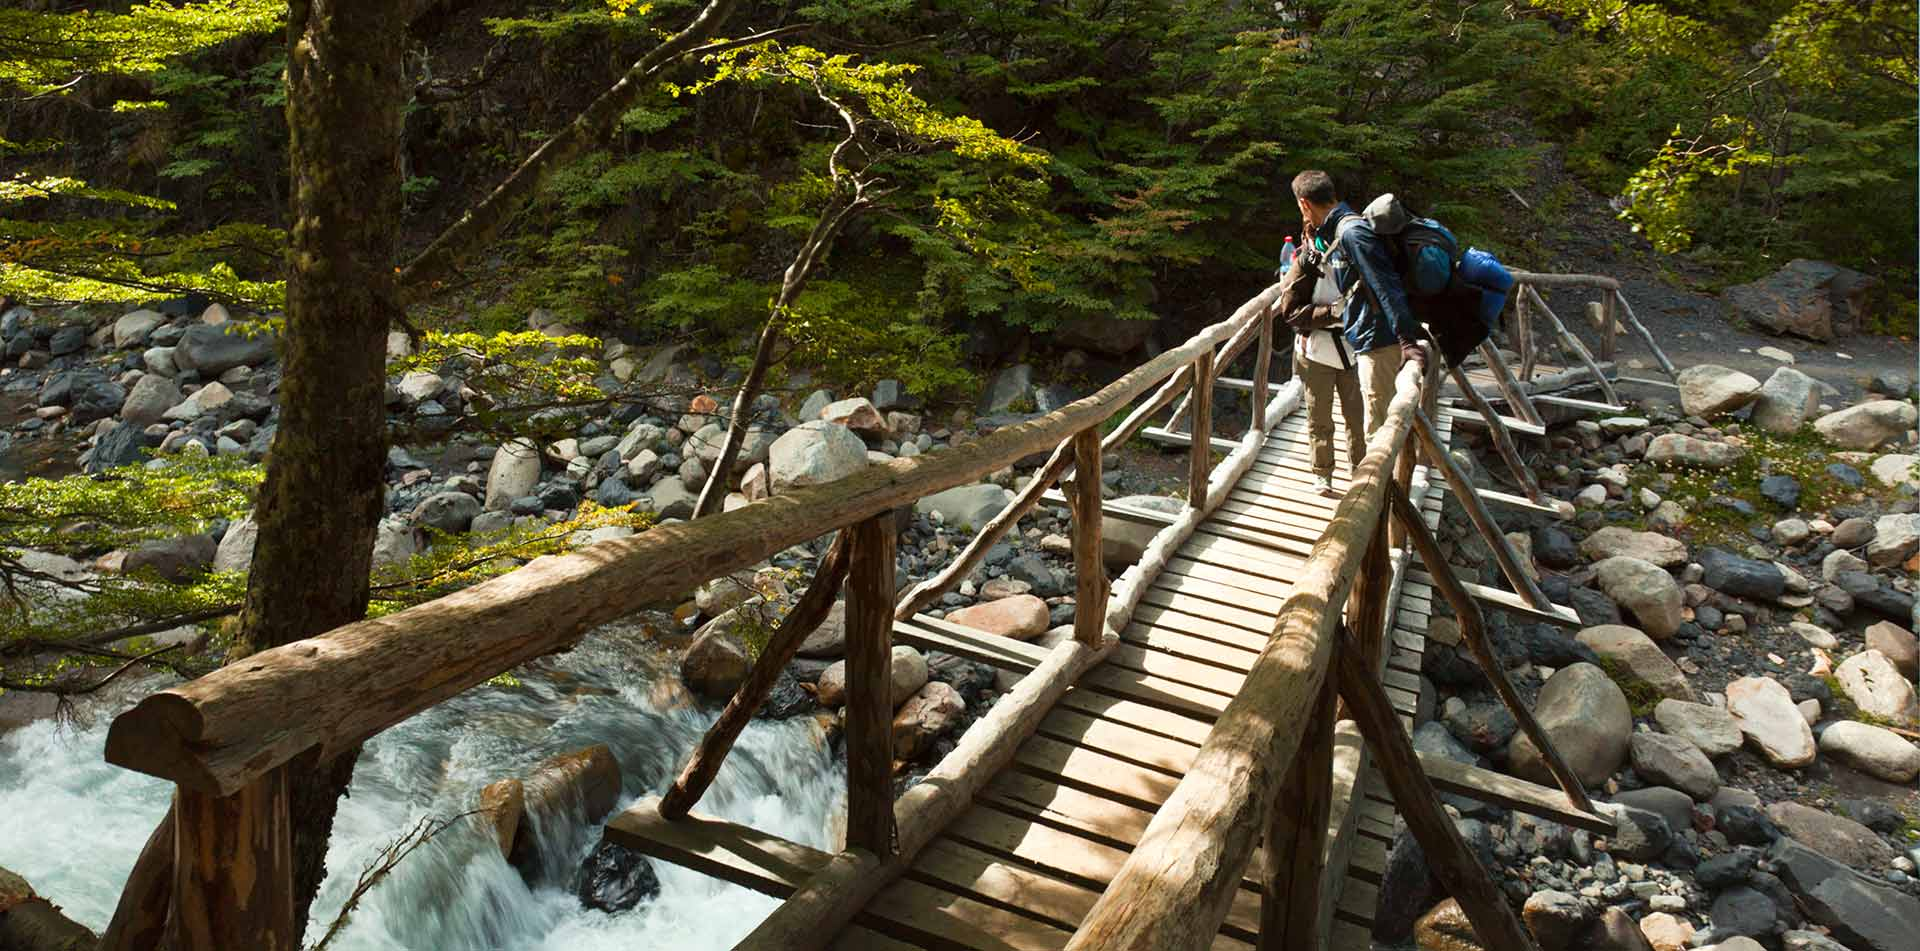 South America Chile Overlook River Water Bridge Flowing Hiking - luxury vacation destinations